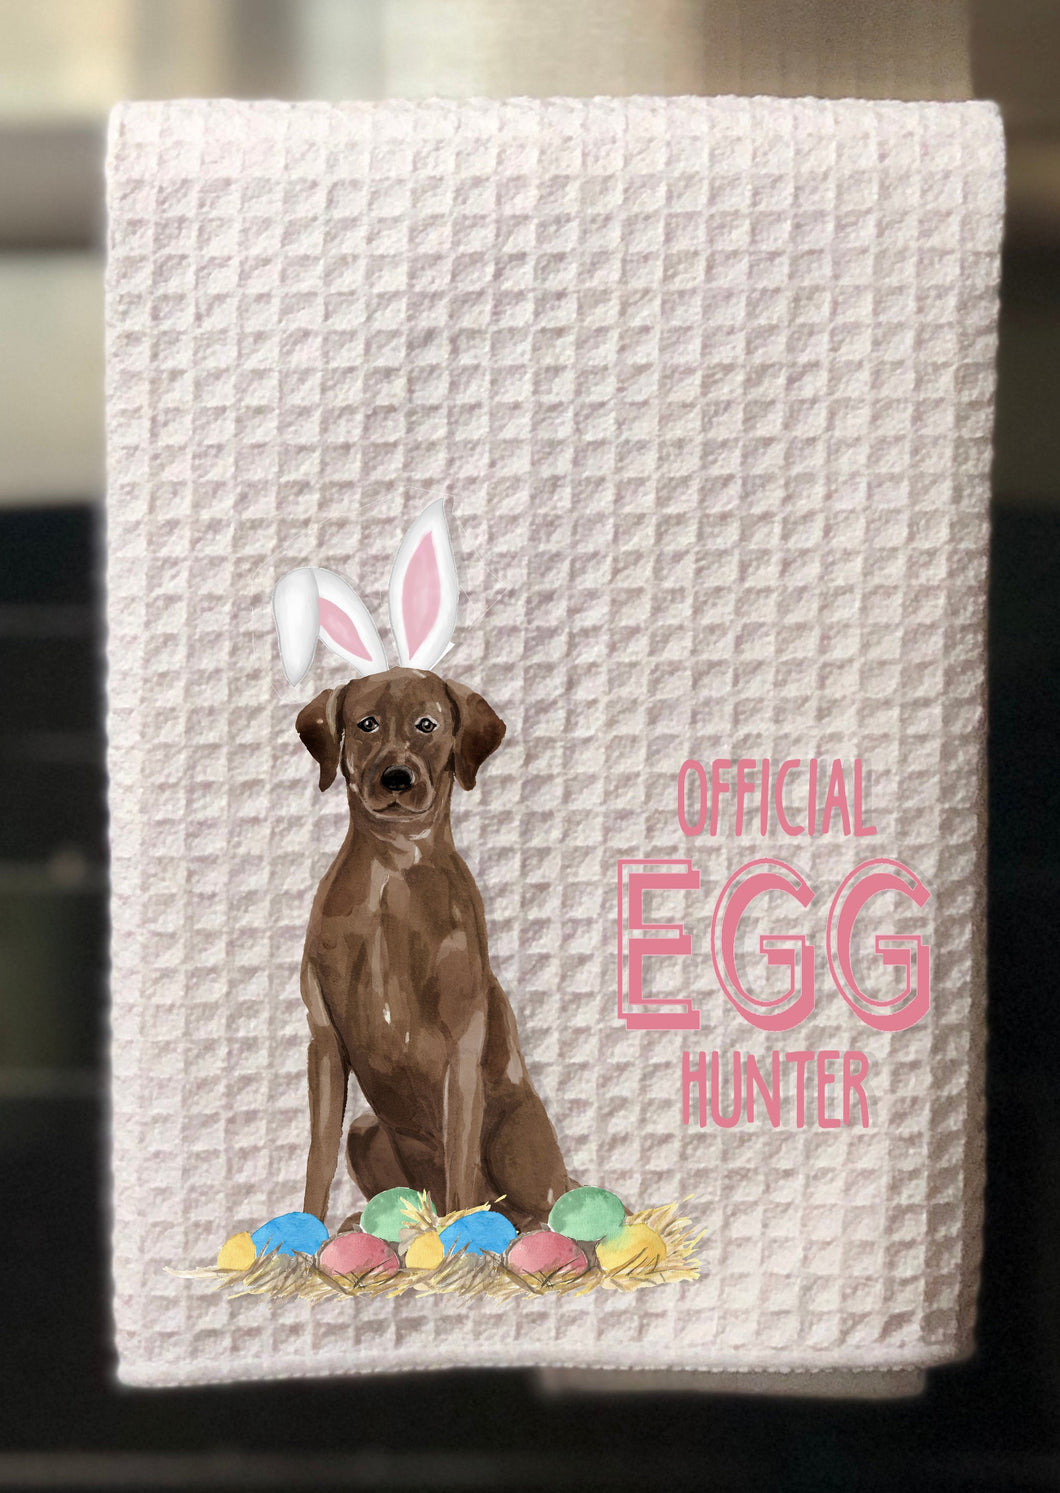 "Chocolate Labrador Retriever Official Egg Hunter Easter Kitchen Waffle Towel -15""x25"", Hostess Gift, Spring Towel"